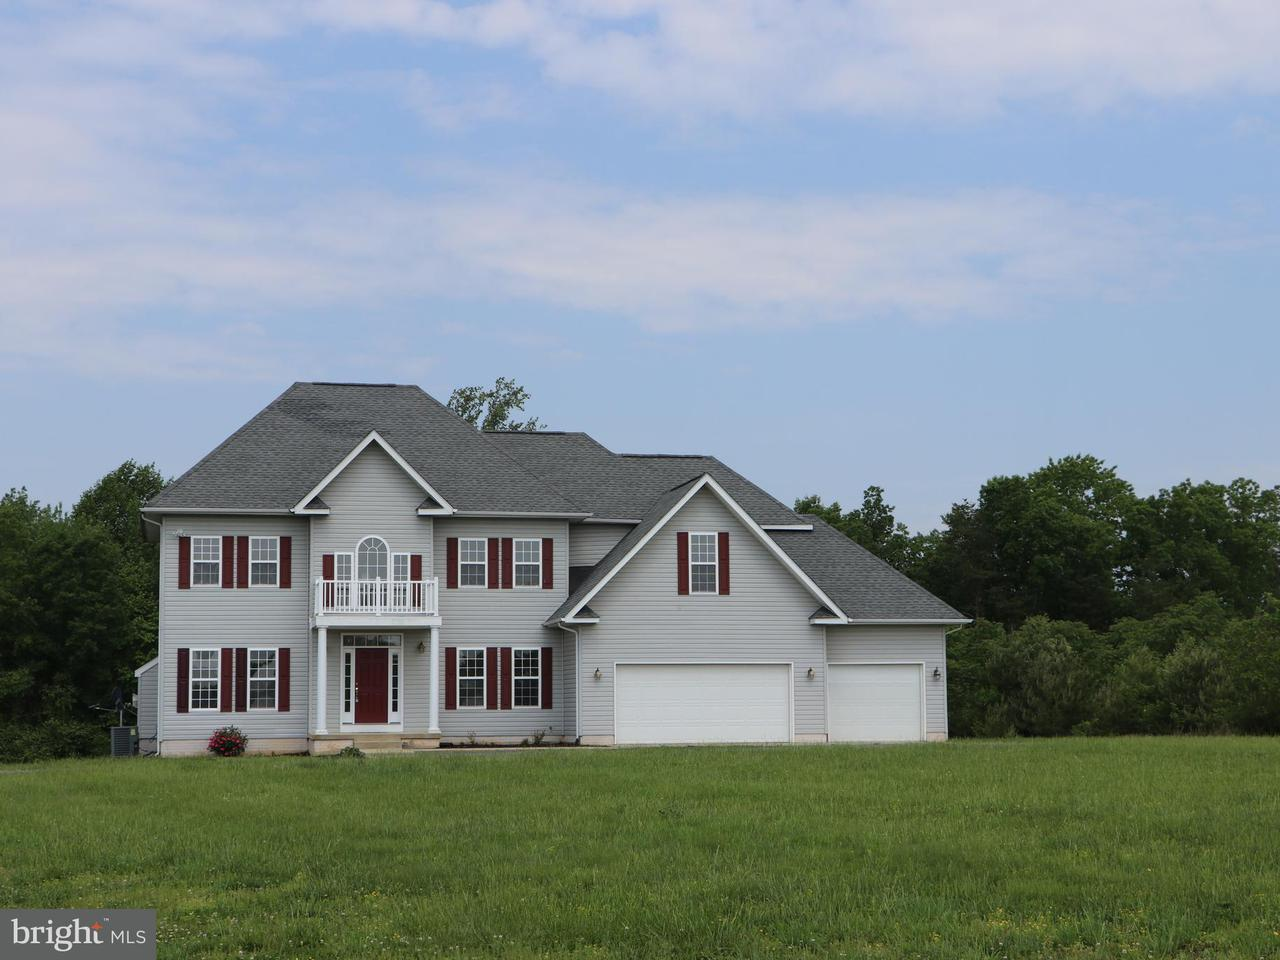 Single Family Home for Sale at 4380 Musterfield Road 4380 Musterfield Road Culpeper, Virginia 22701 United States